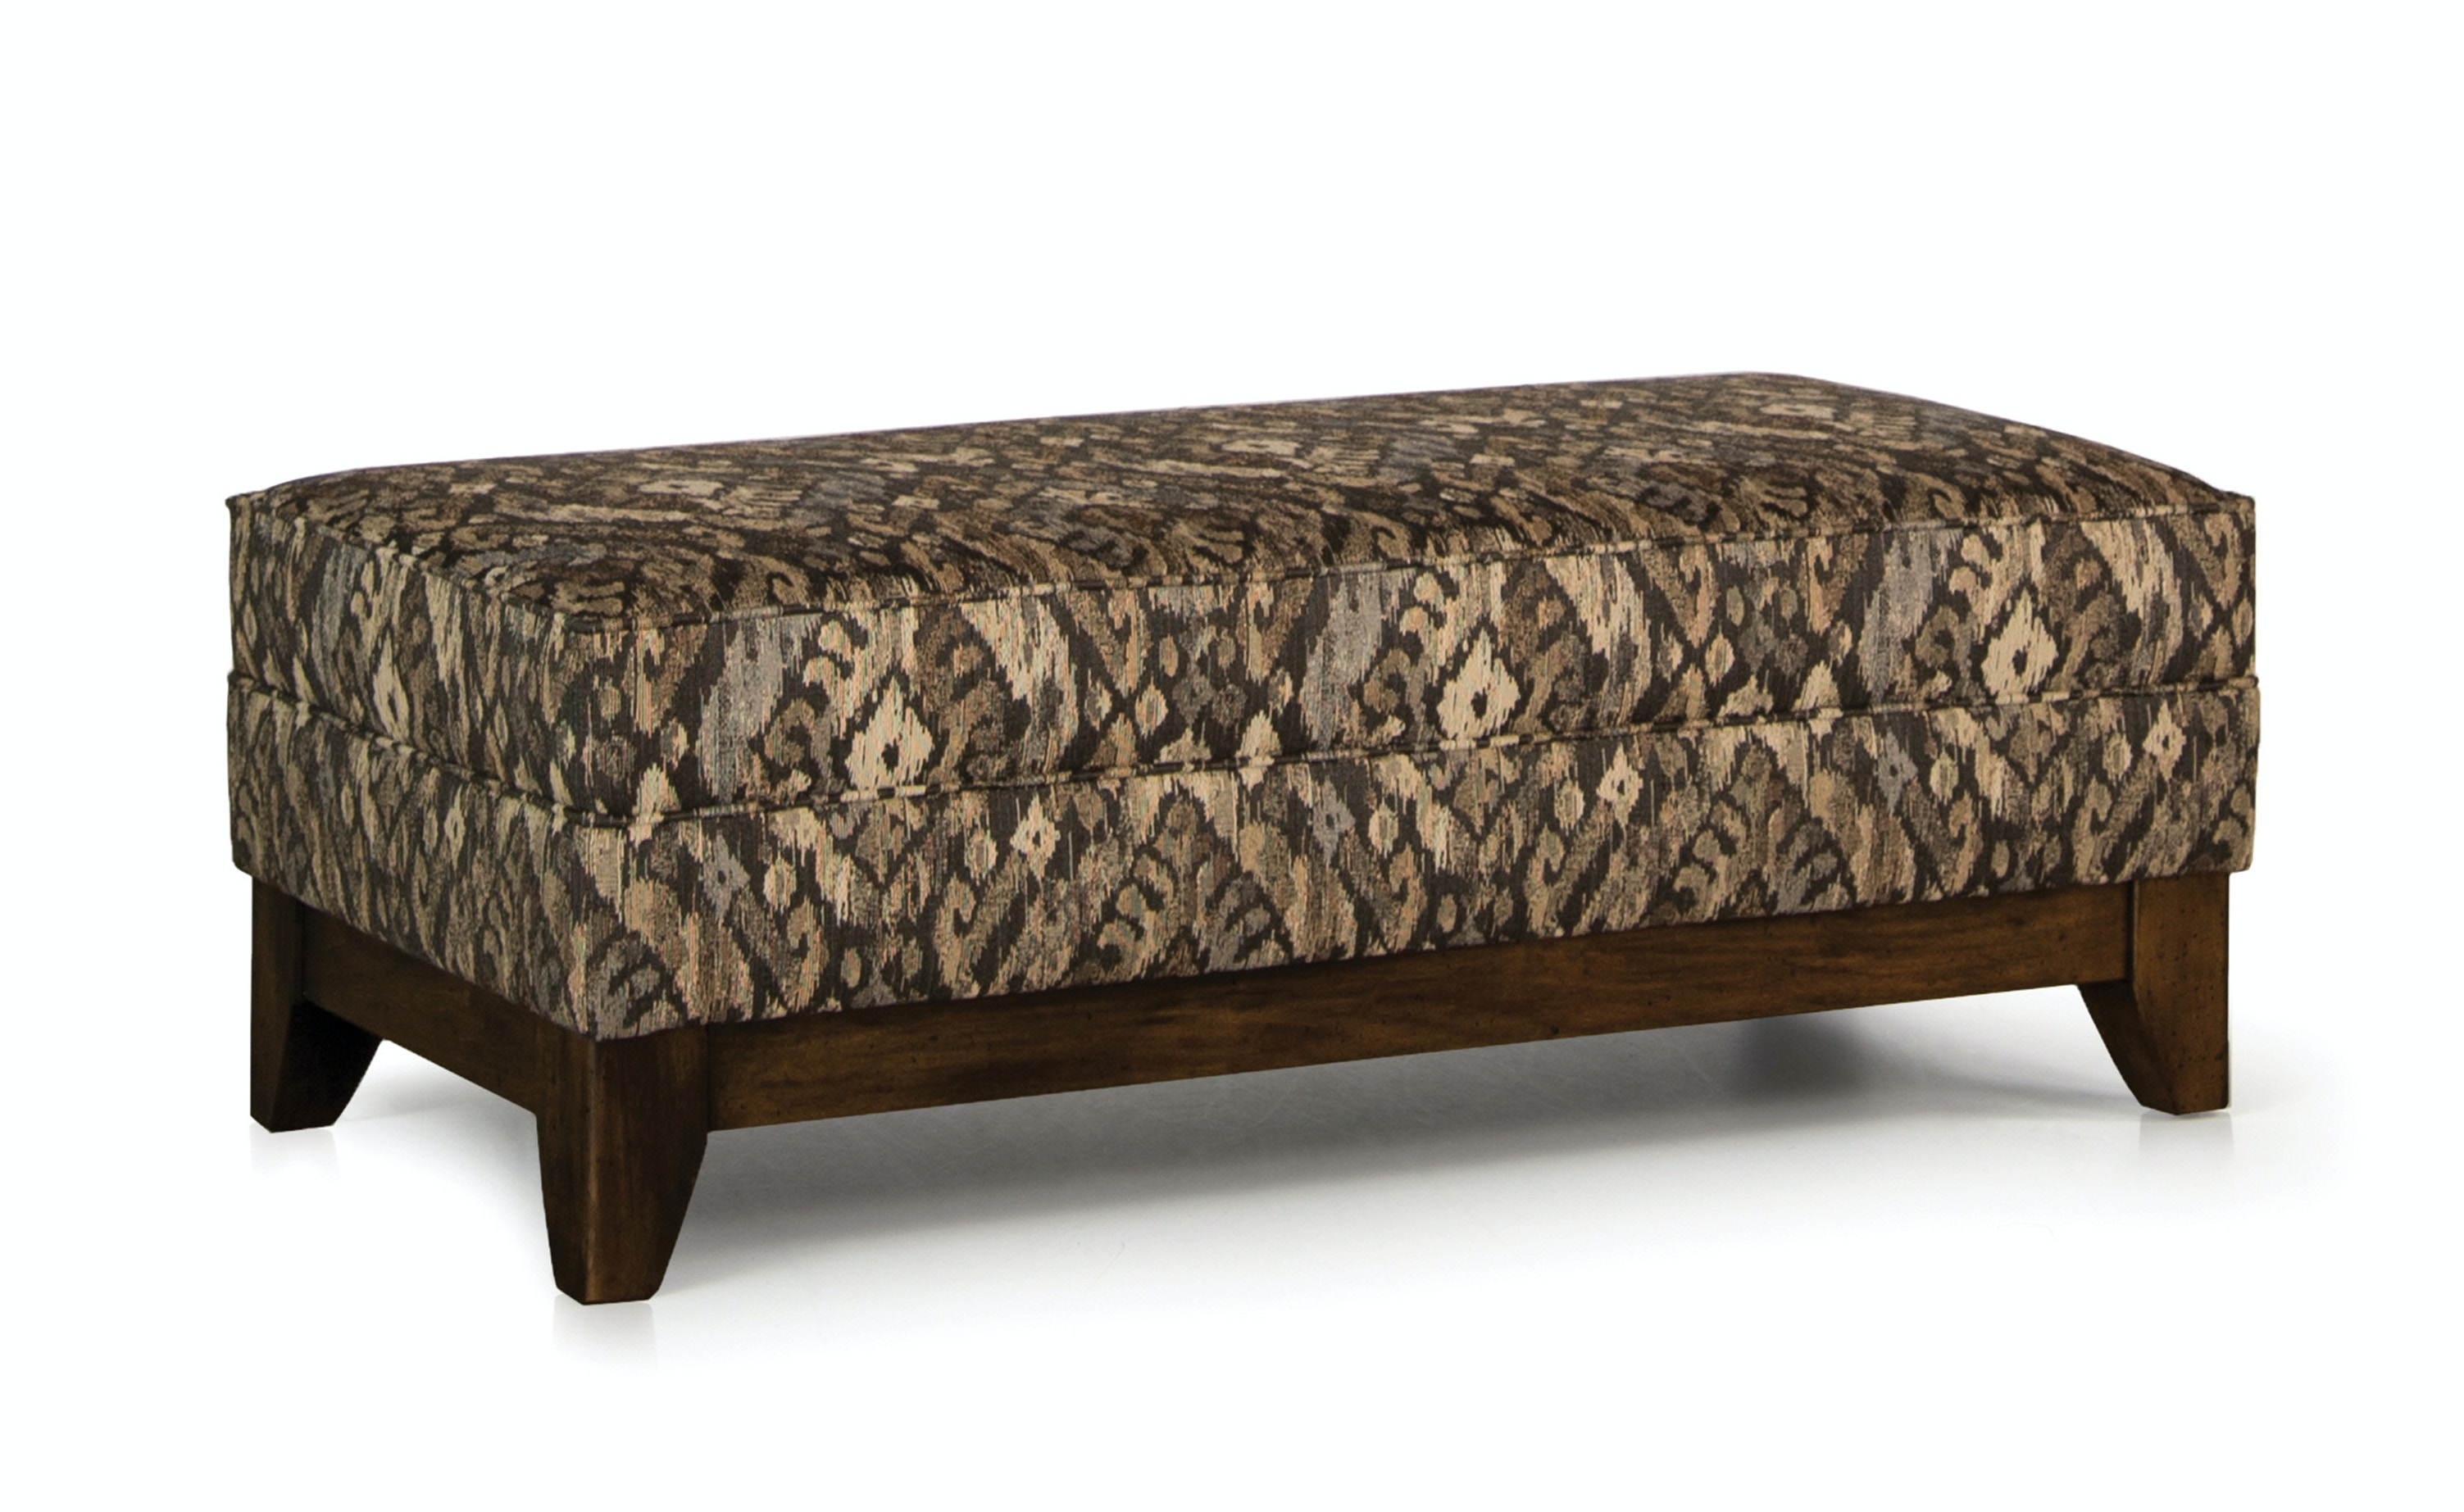 smith brothers cocktail ottoman